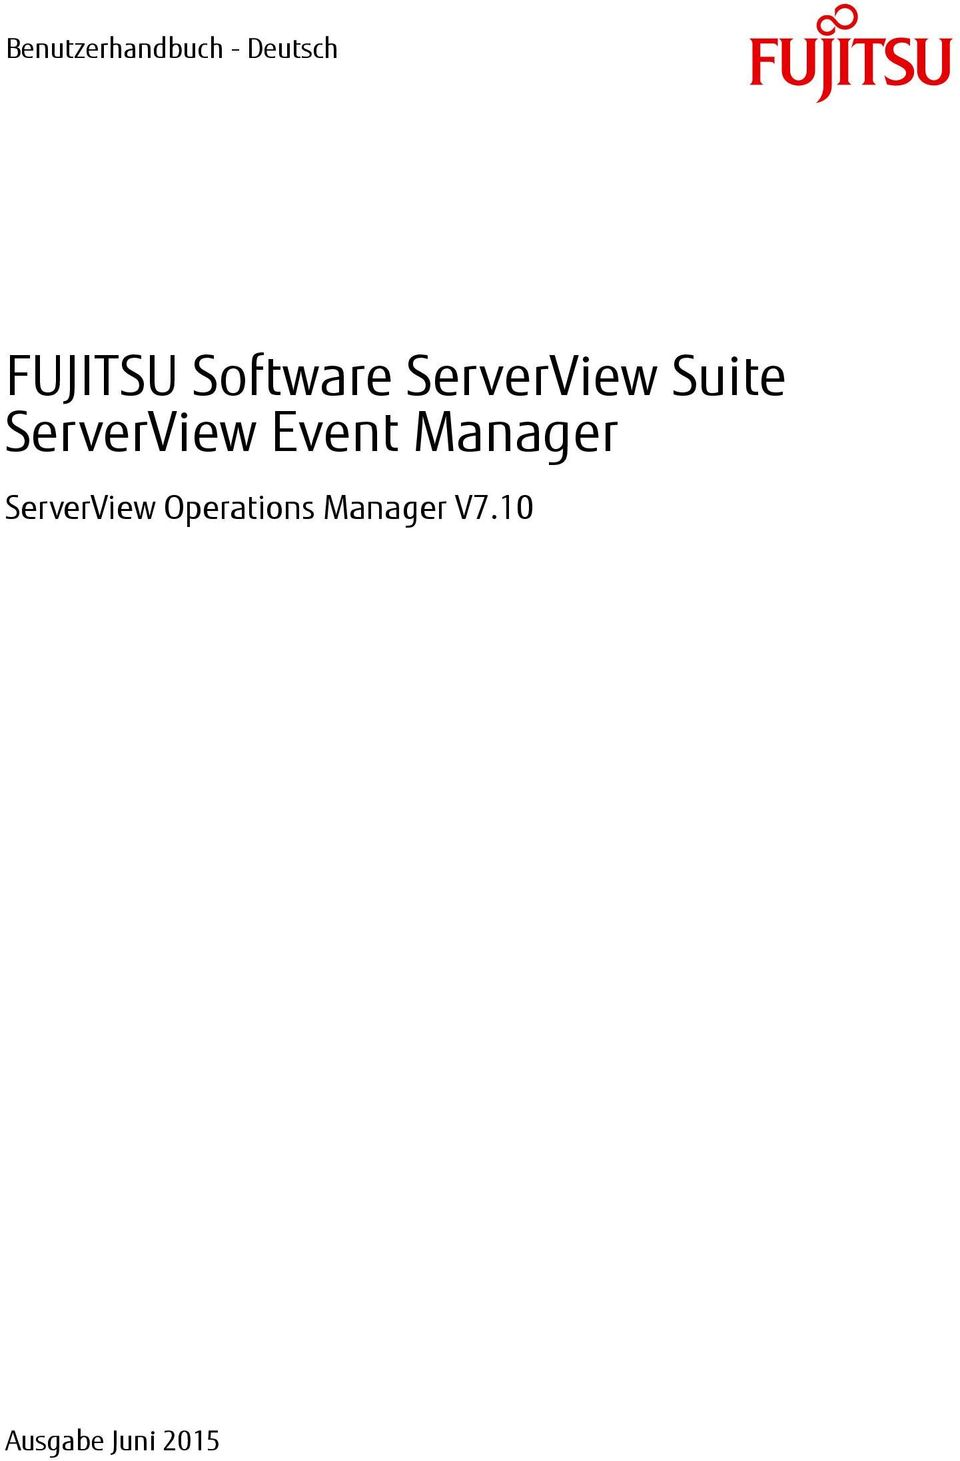 ServerView Event Manager